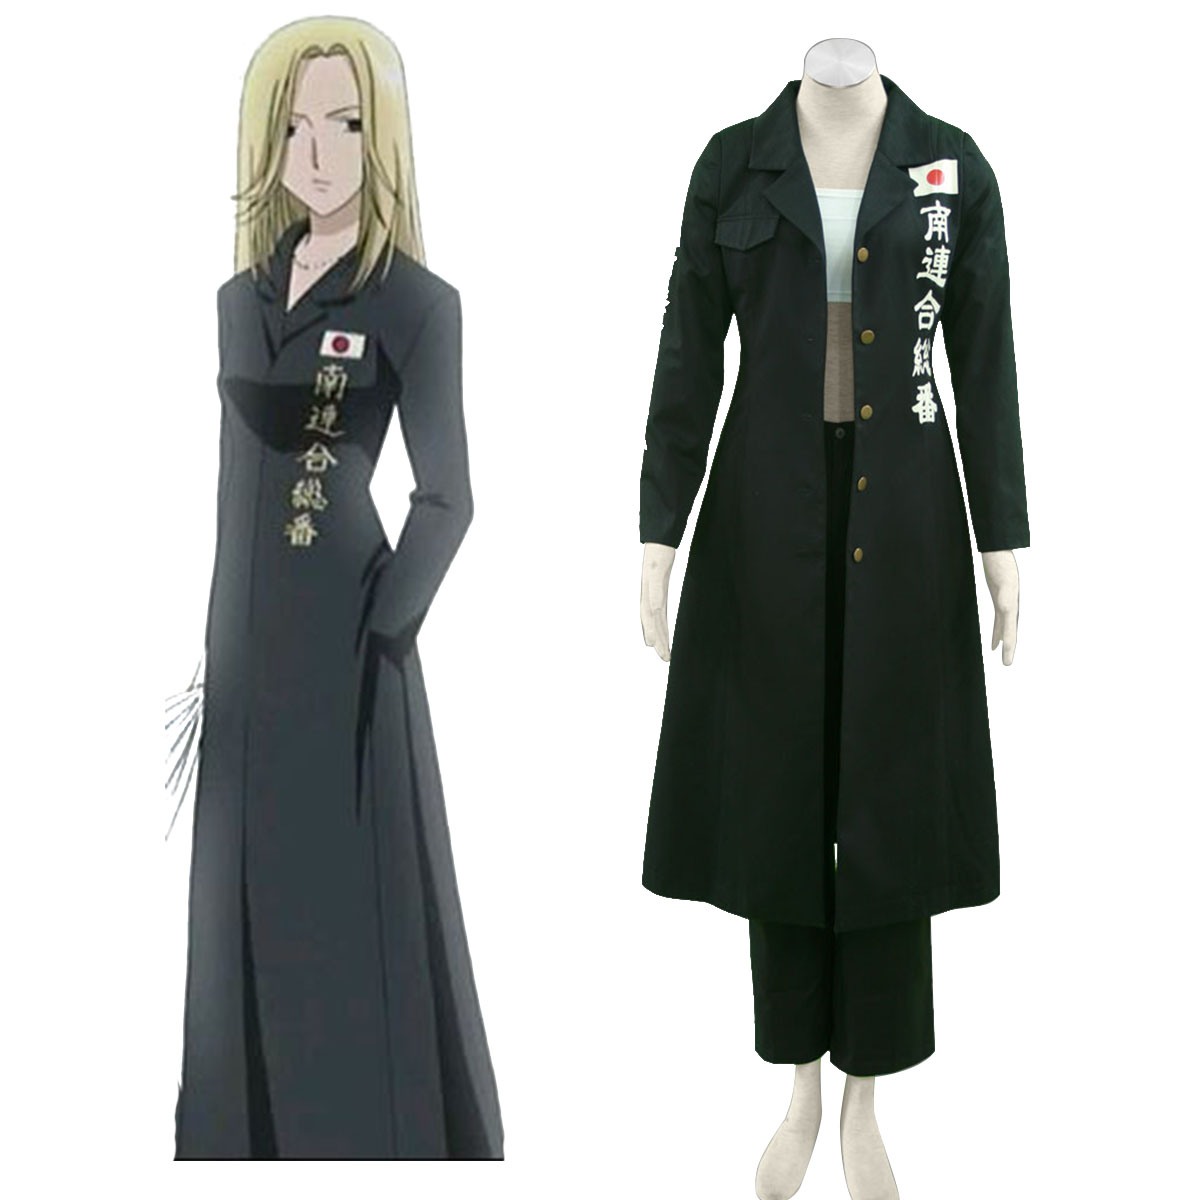 Fruits Basket Uotani Arisa Cosplay Costumes